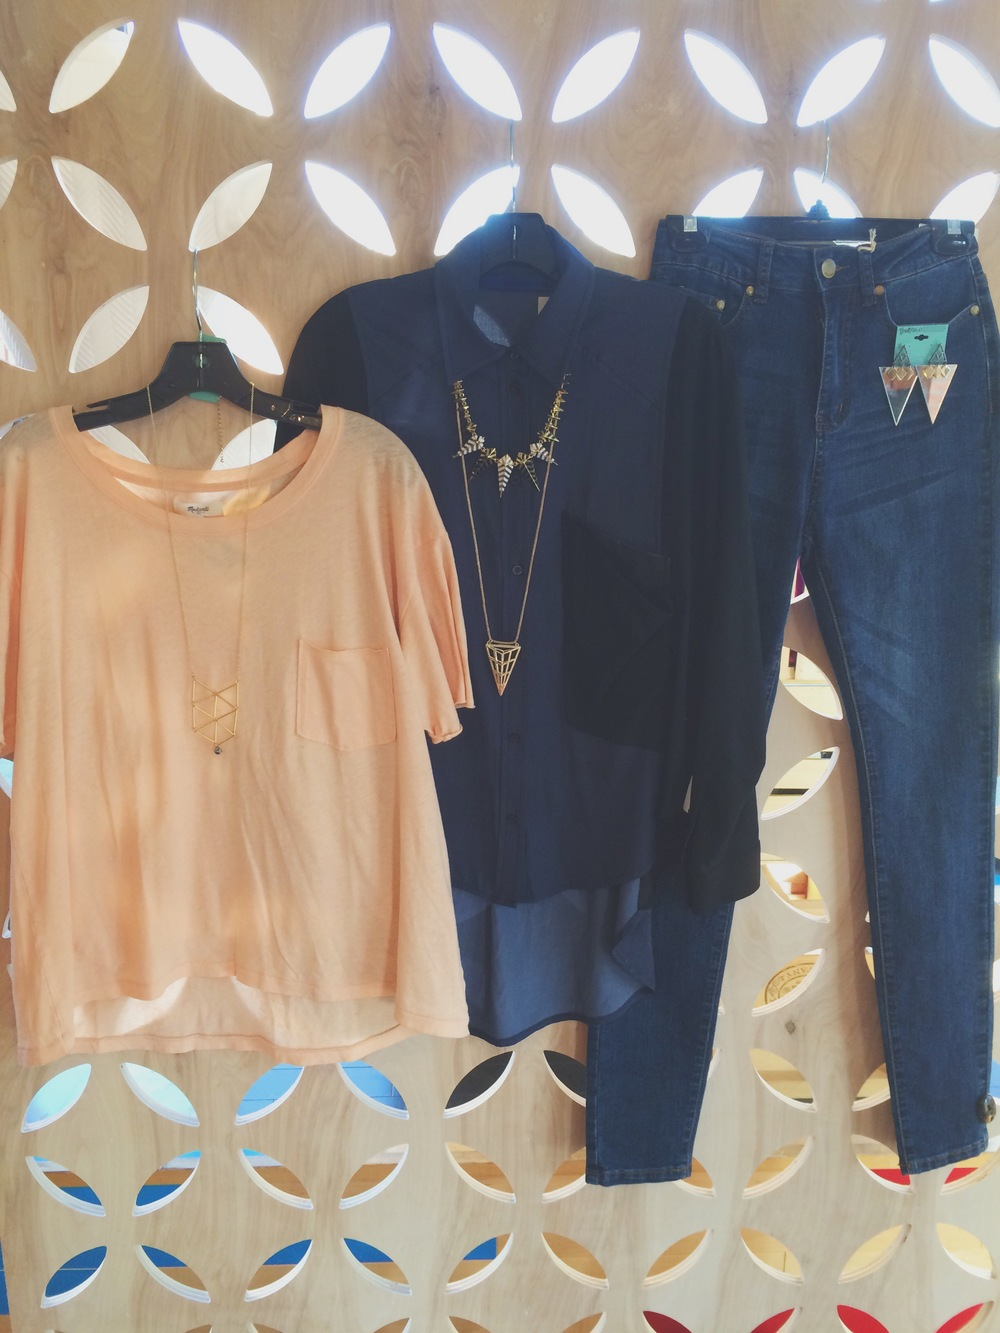 Gently worn basic tee shirts, flowy blouses, high rise / mid rise denim jeans. Necklaces with a long chain and statement pendant, or even necklaces with a short chain and a huge statement pendant.